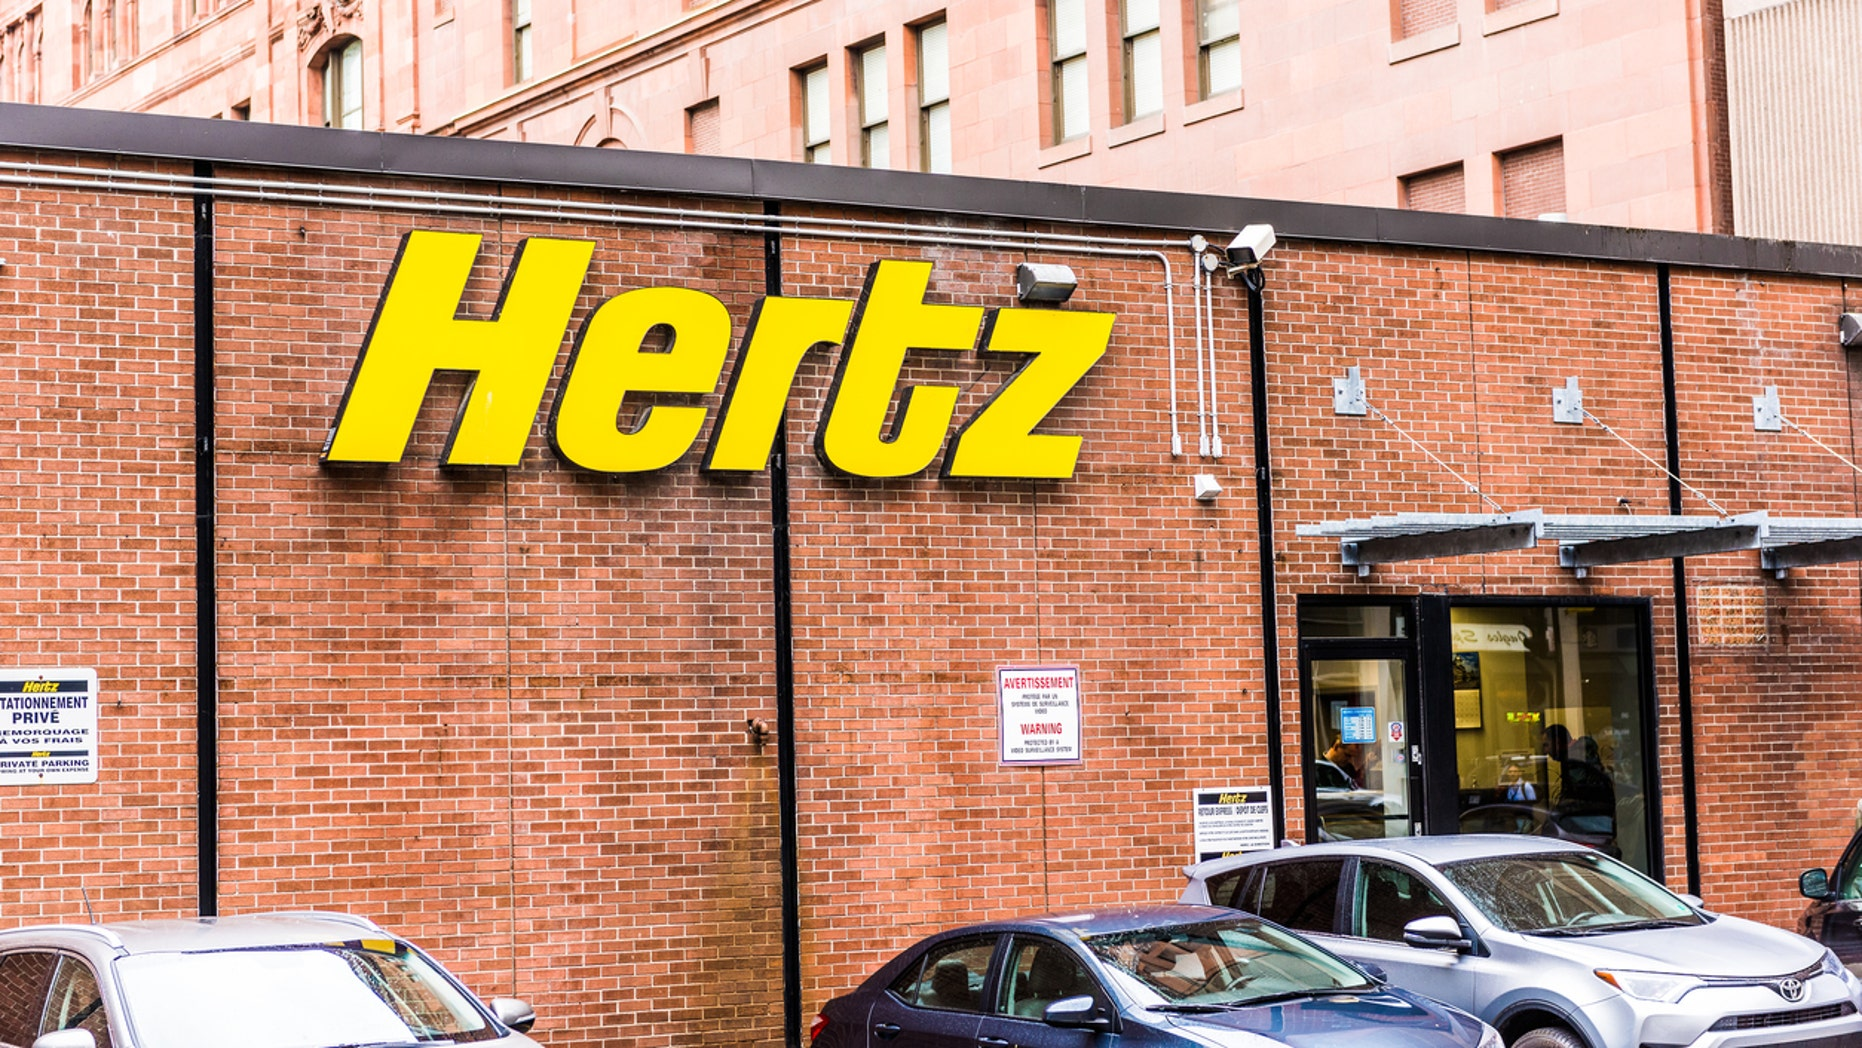 Hertz has enraged customers with its mass cancellations.